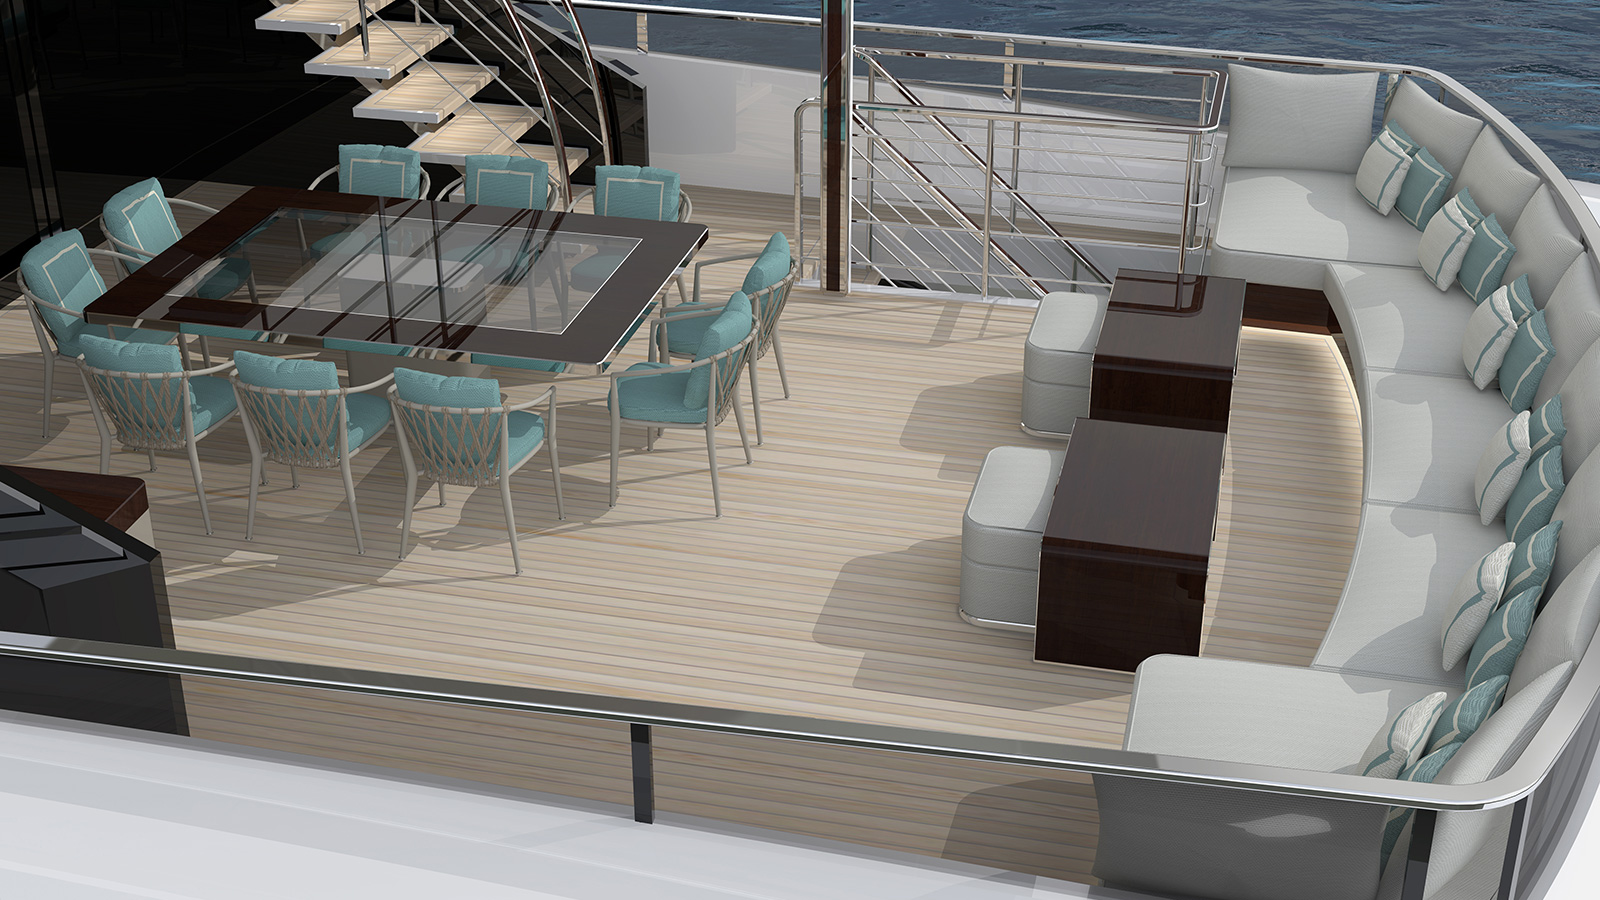 the-upper-deck-aft-of-the-prince-shark-50-by-team-for-design-enrico-gobbi